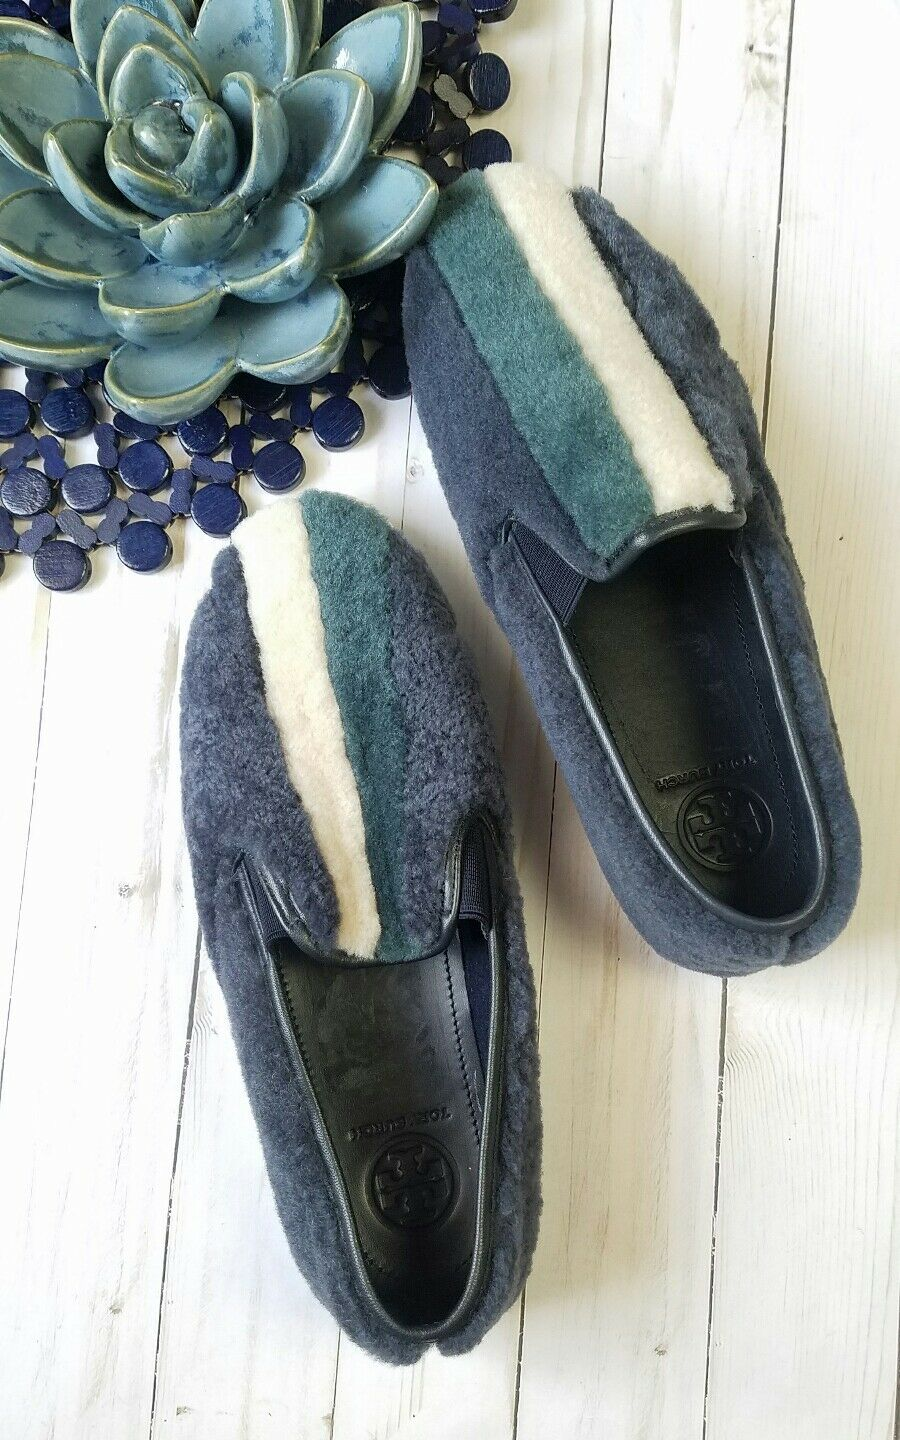 New Tory Burch Slip on Bamford Coloree -Block Shearling  scarpe da ginnastica Sz 9.5 NWOB  online economico